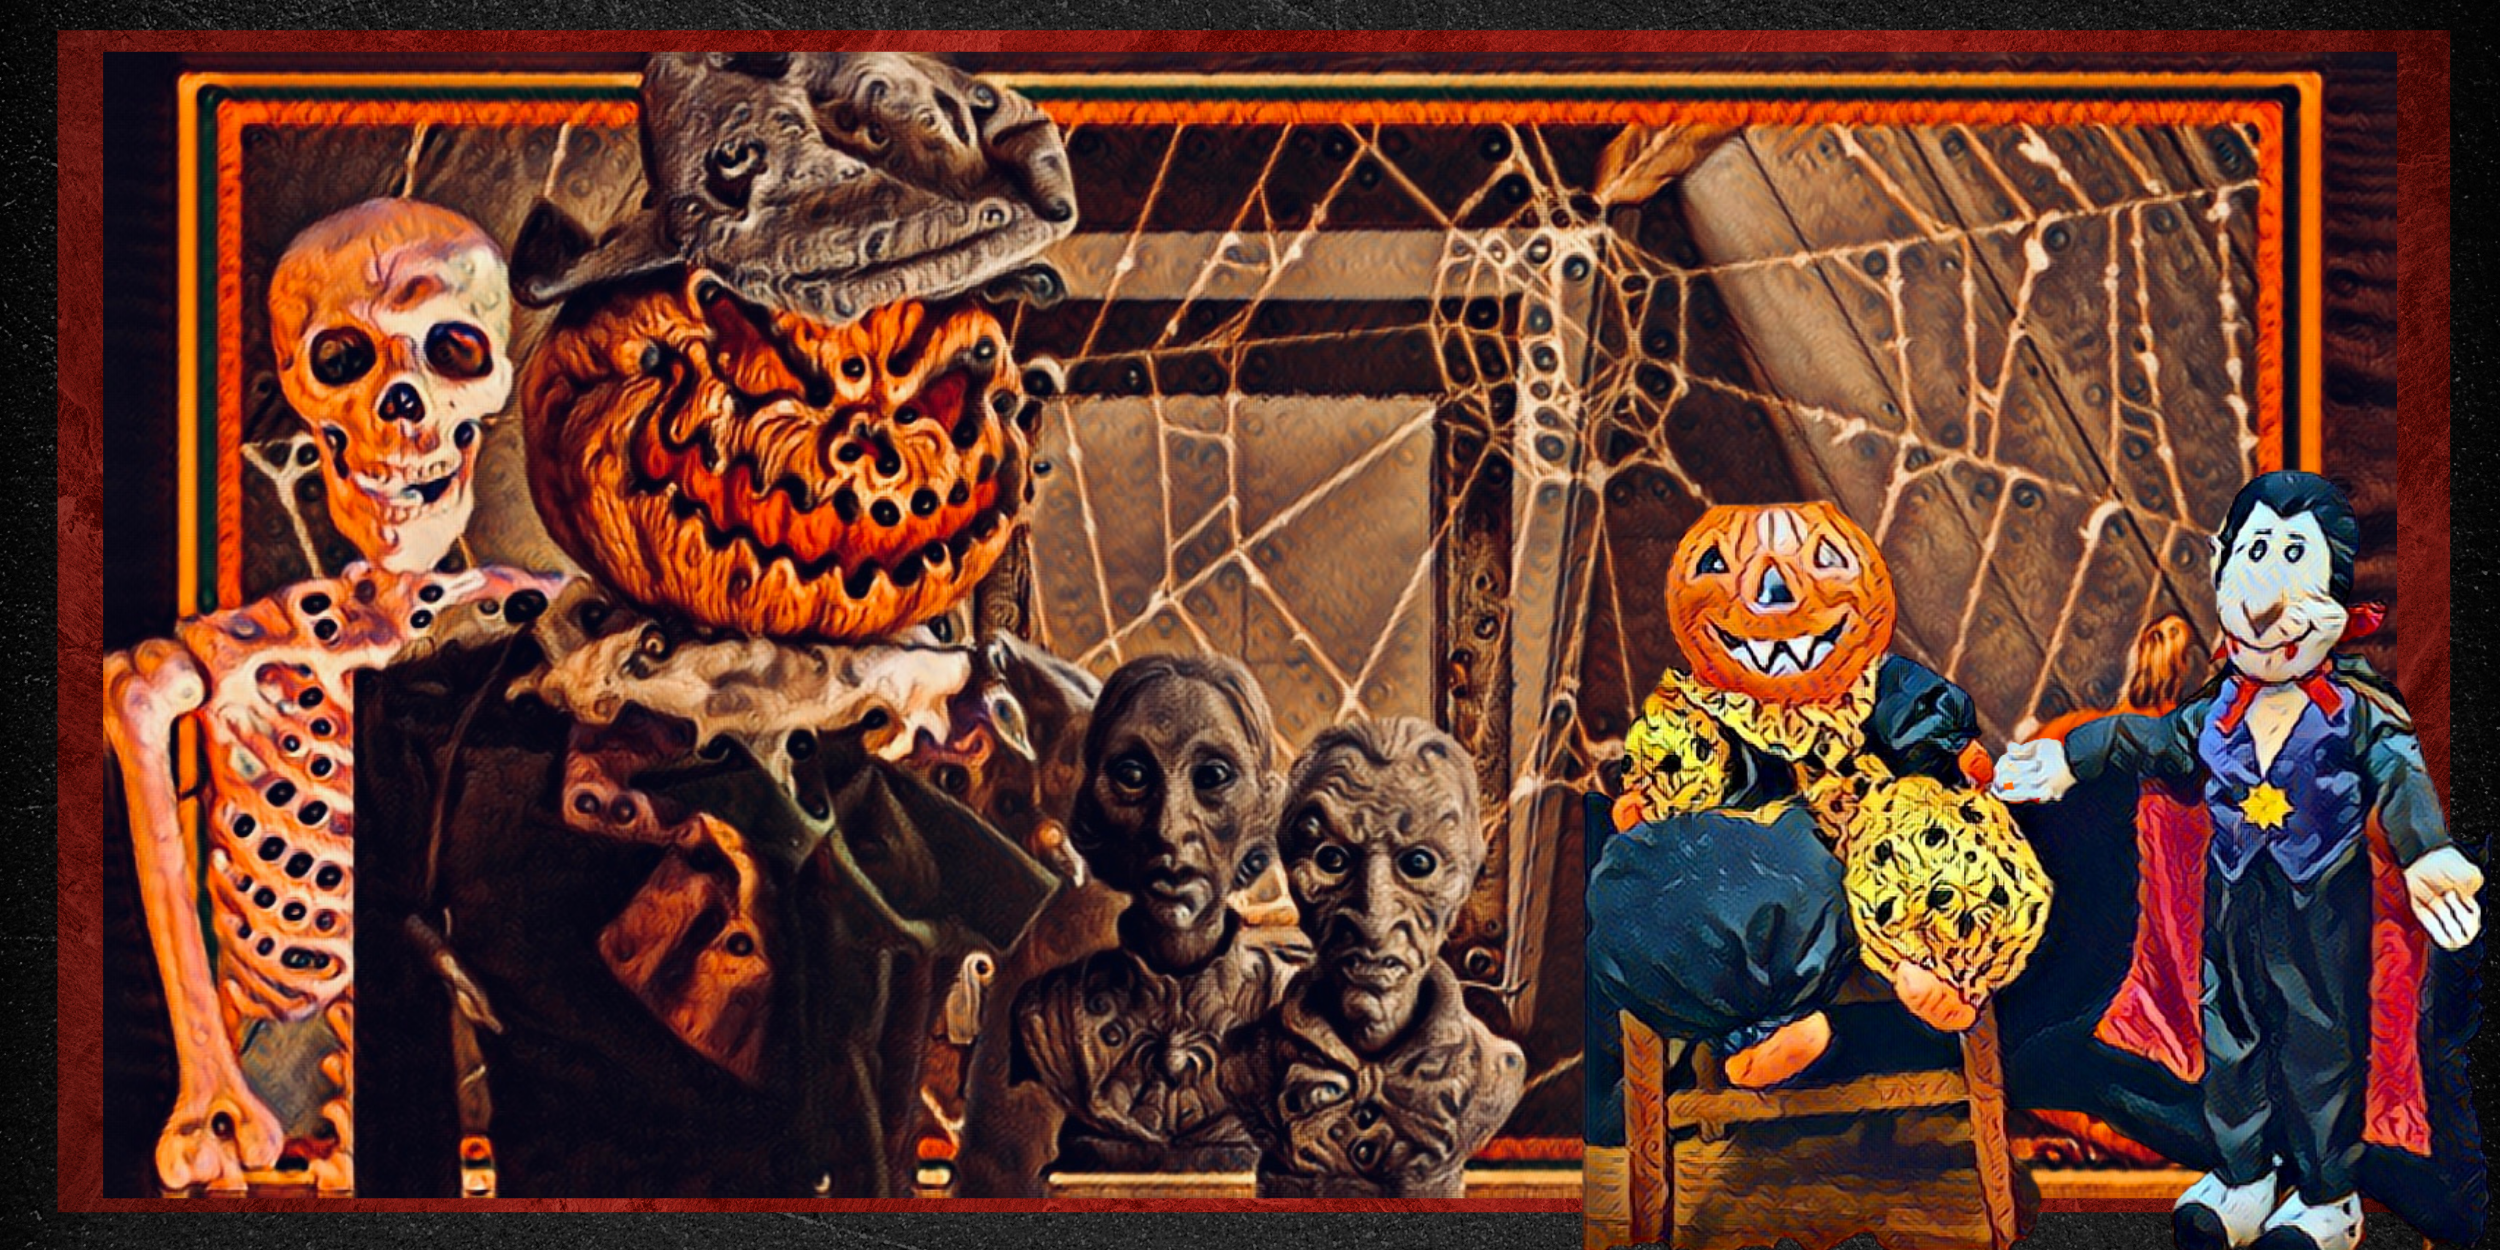 Blood Bones, Pumpkin Jack, Agatha and Phineas Greystone are in the attic with Jacky O and Dracula.